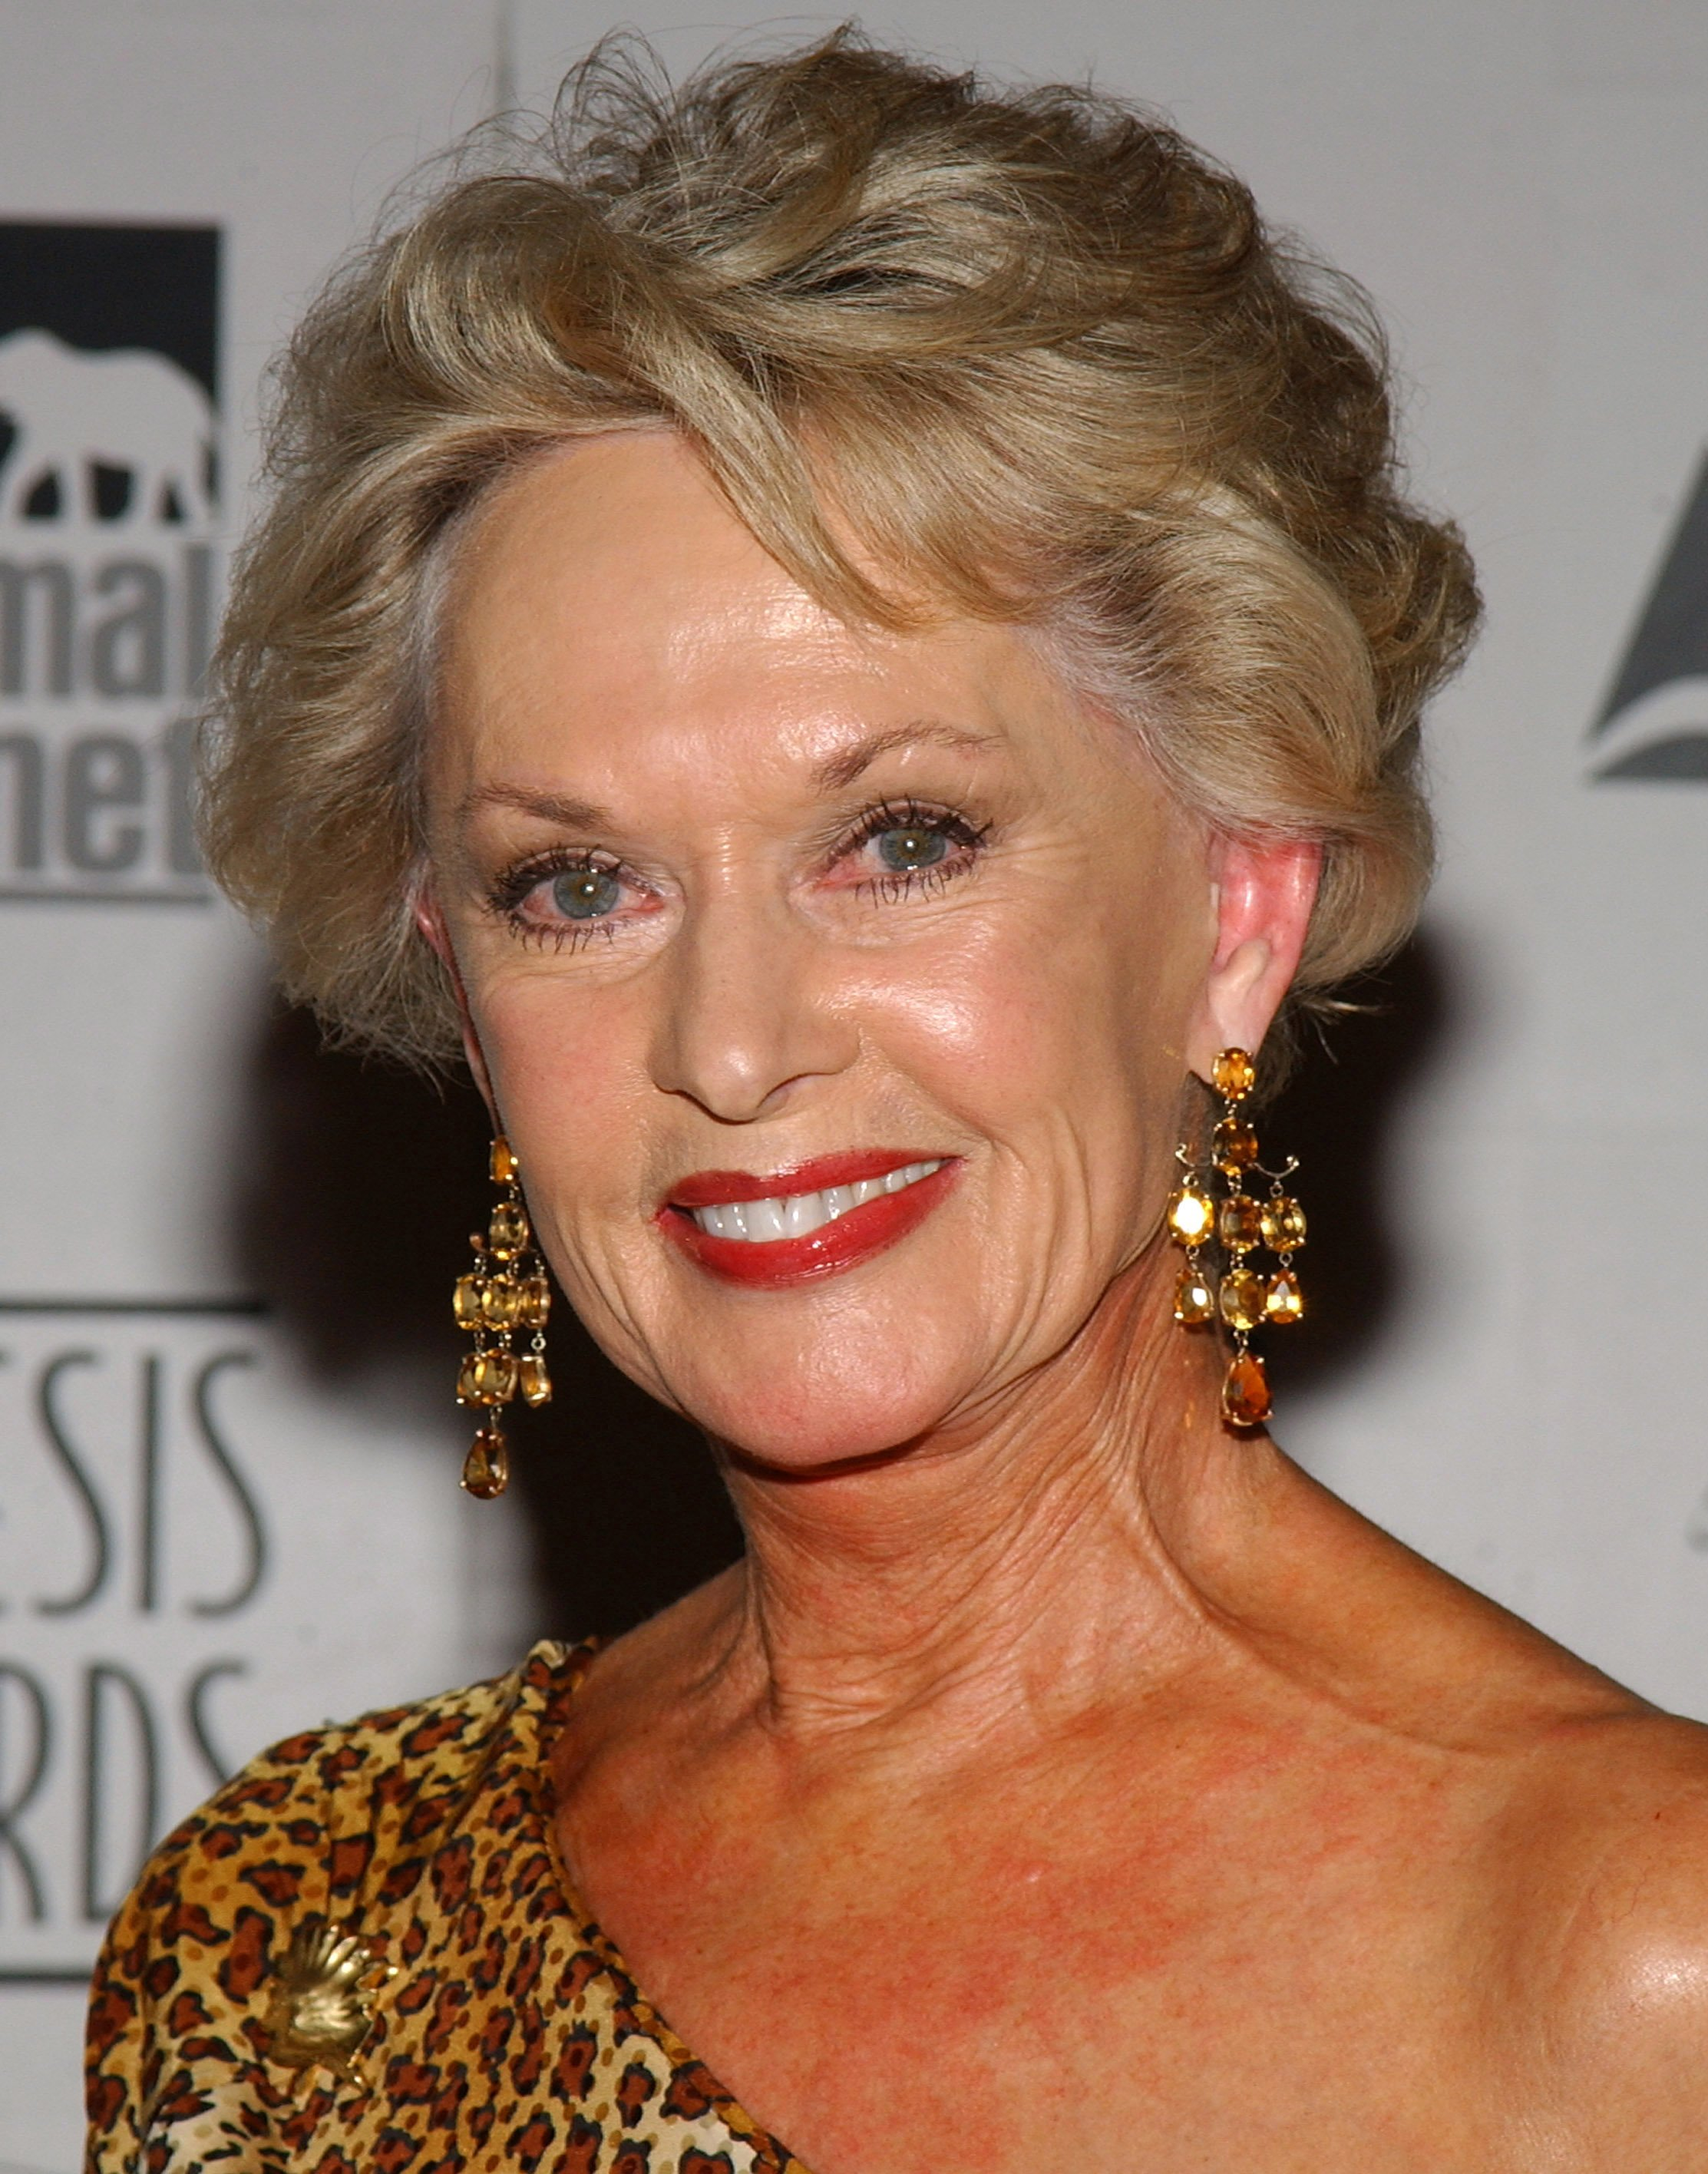 Tippi Hedren during The 18th Annual Genesis Awards and 50th Anniversary of the Humane Society of the United States - Pressroom at Beverly Hilton in Beverly Hills, California, United States. | Source: Getty Images